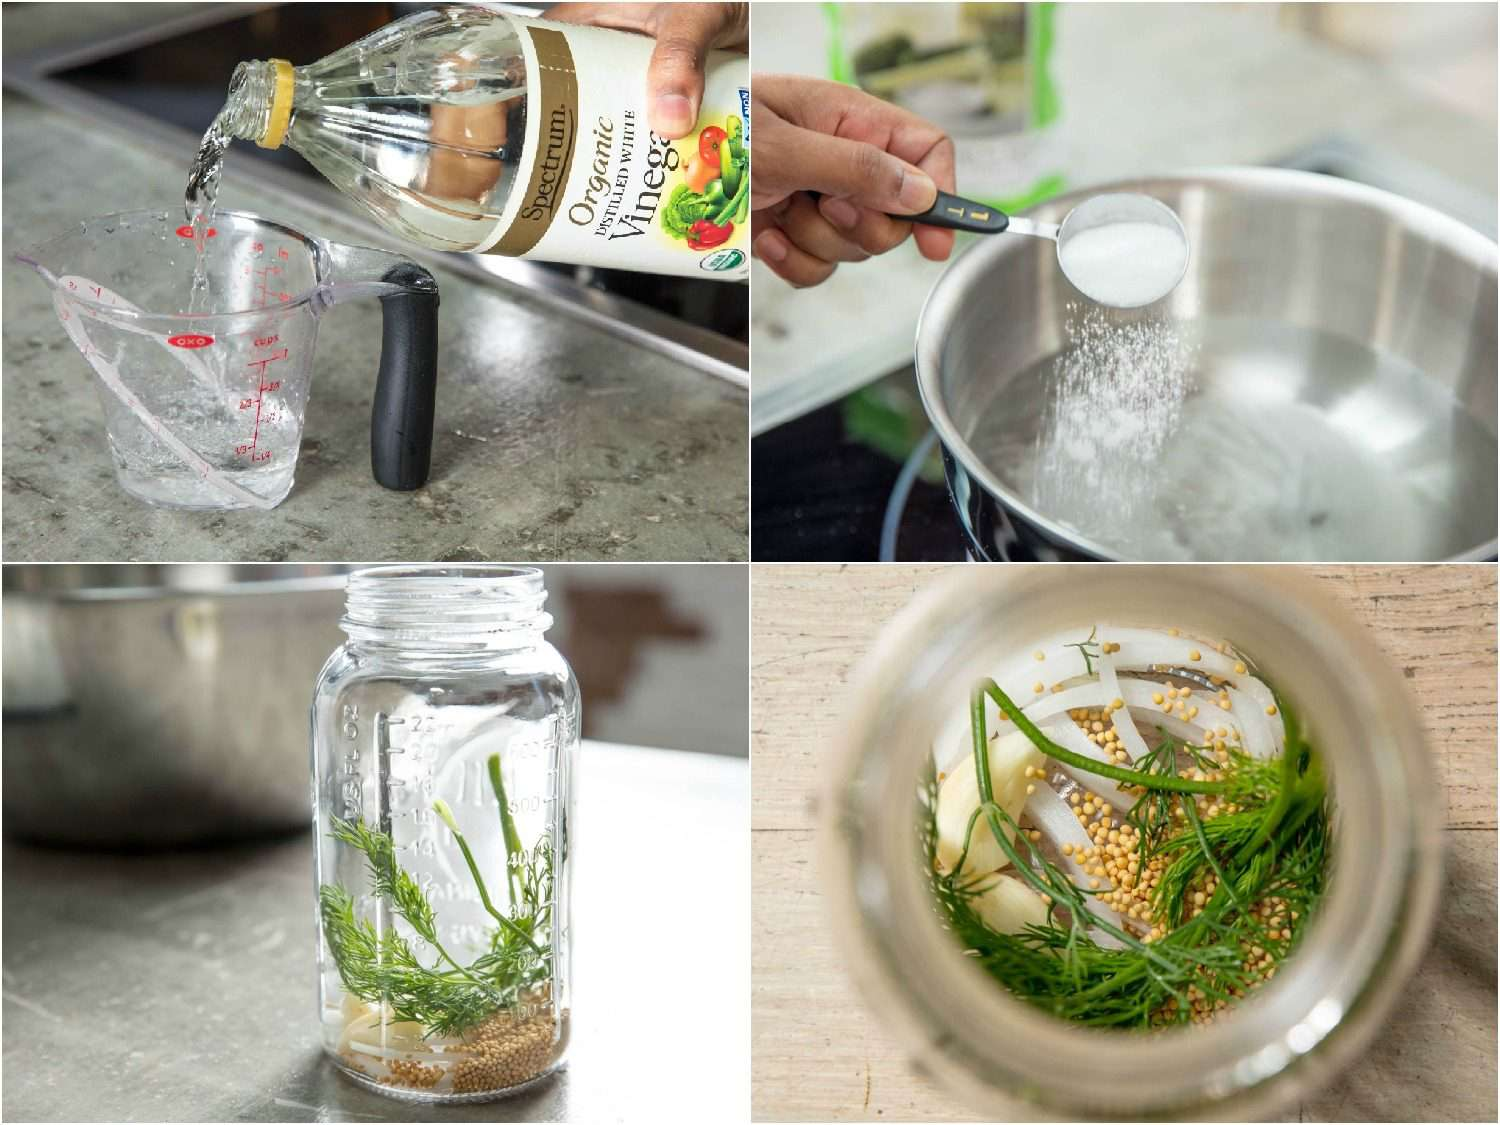 Collage of four photos depicting, clockwise from top left, distilled white vinegar being poured into measuring cup; salt being added to bowl of water from a tablespoon measure; overhead view into glass jar with vegetables and spices that will season the pickles at the bottom; side view of pickle jar with vegetables and spices at the bottom